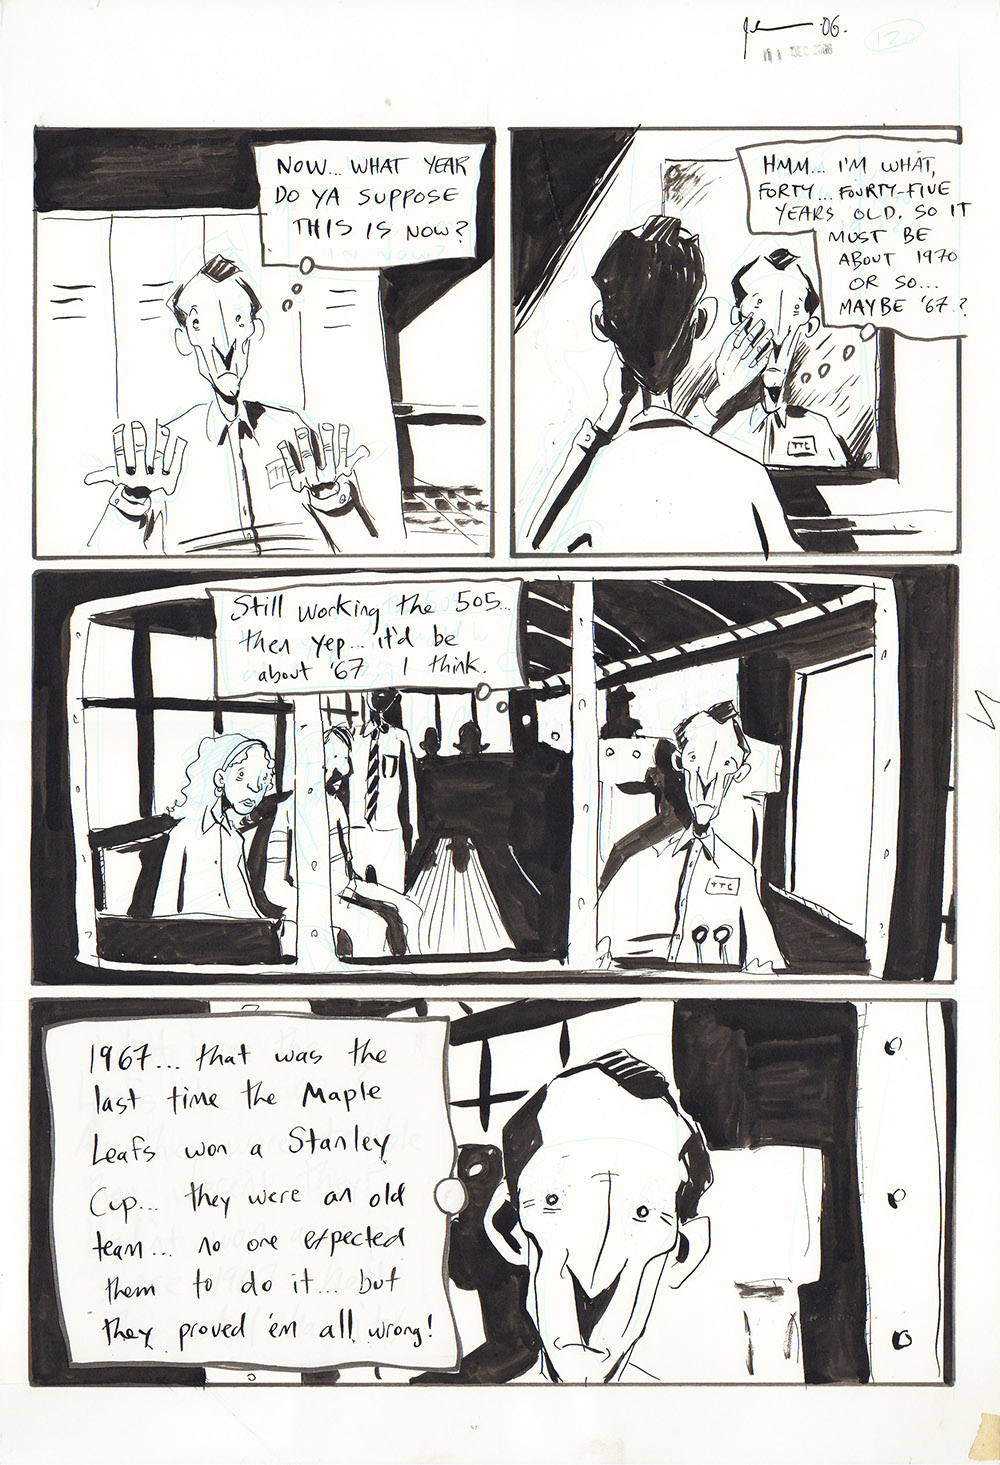 Essex County Book 2: Ghost Stories - page 238